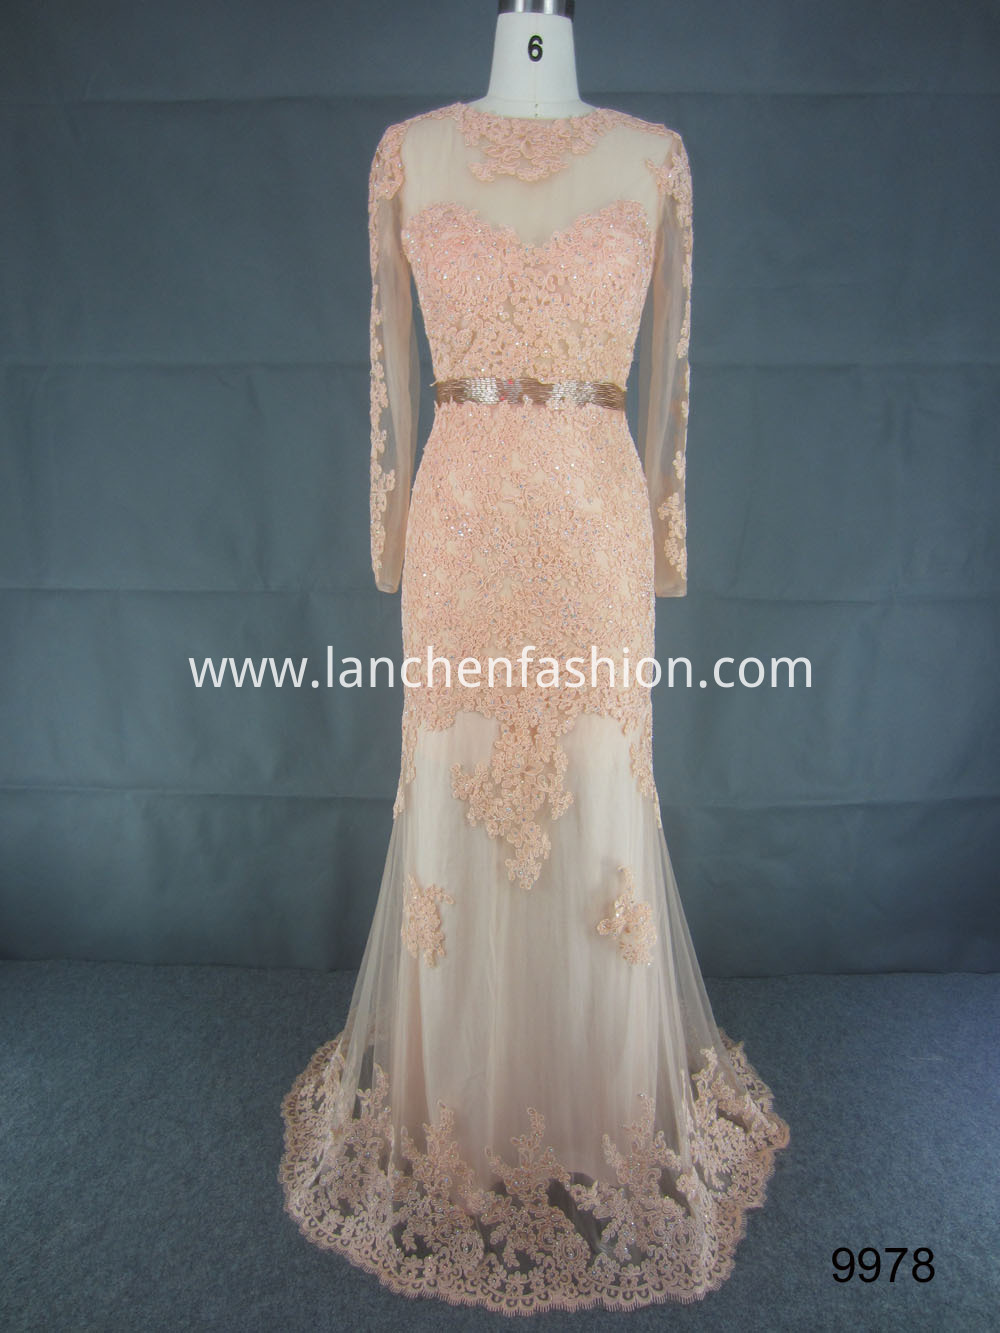 Lace Beaded Celebrity Dress